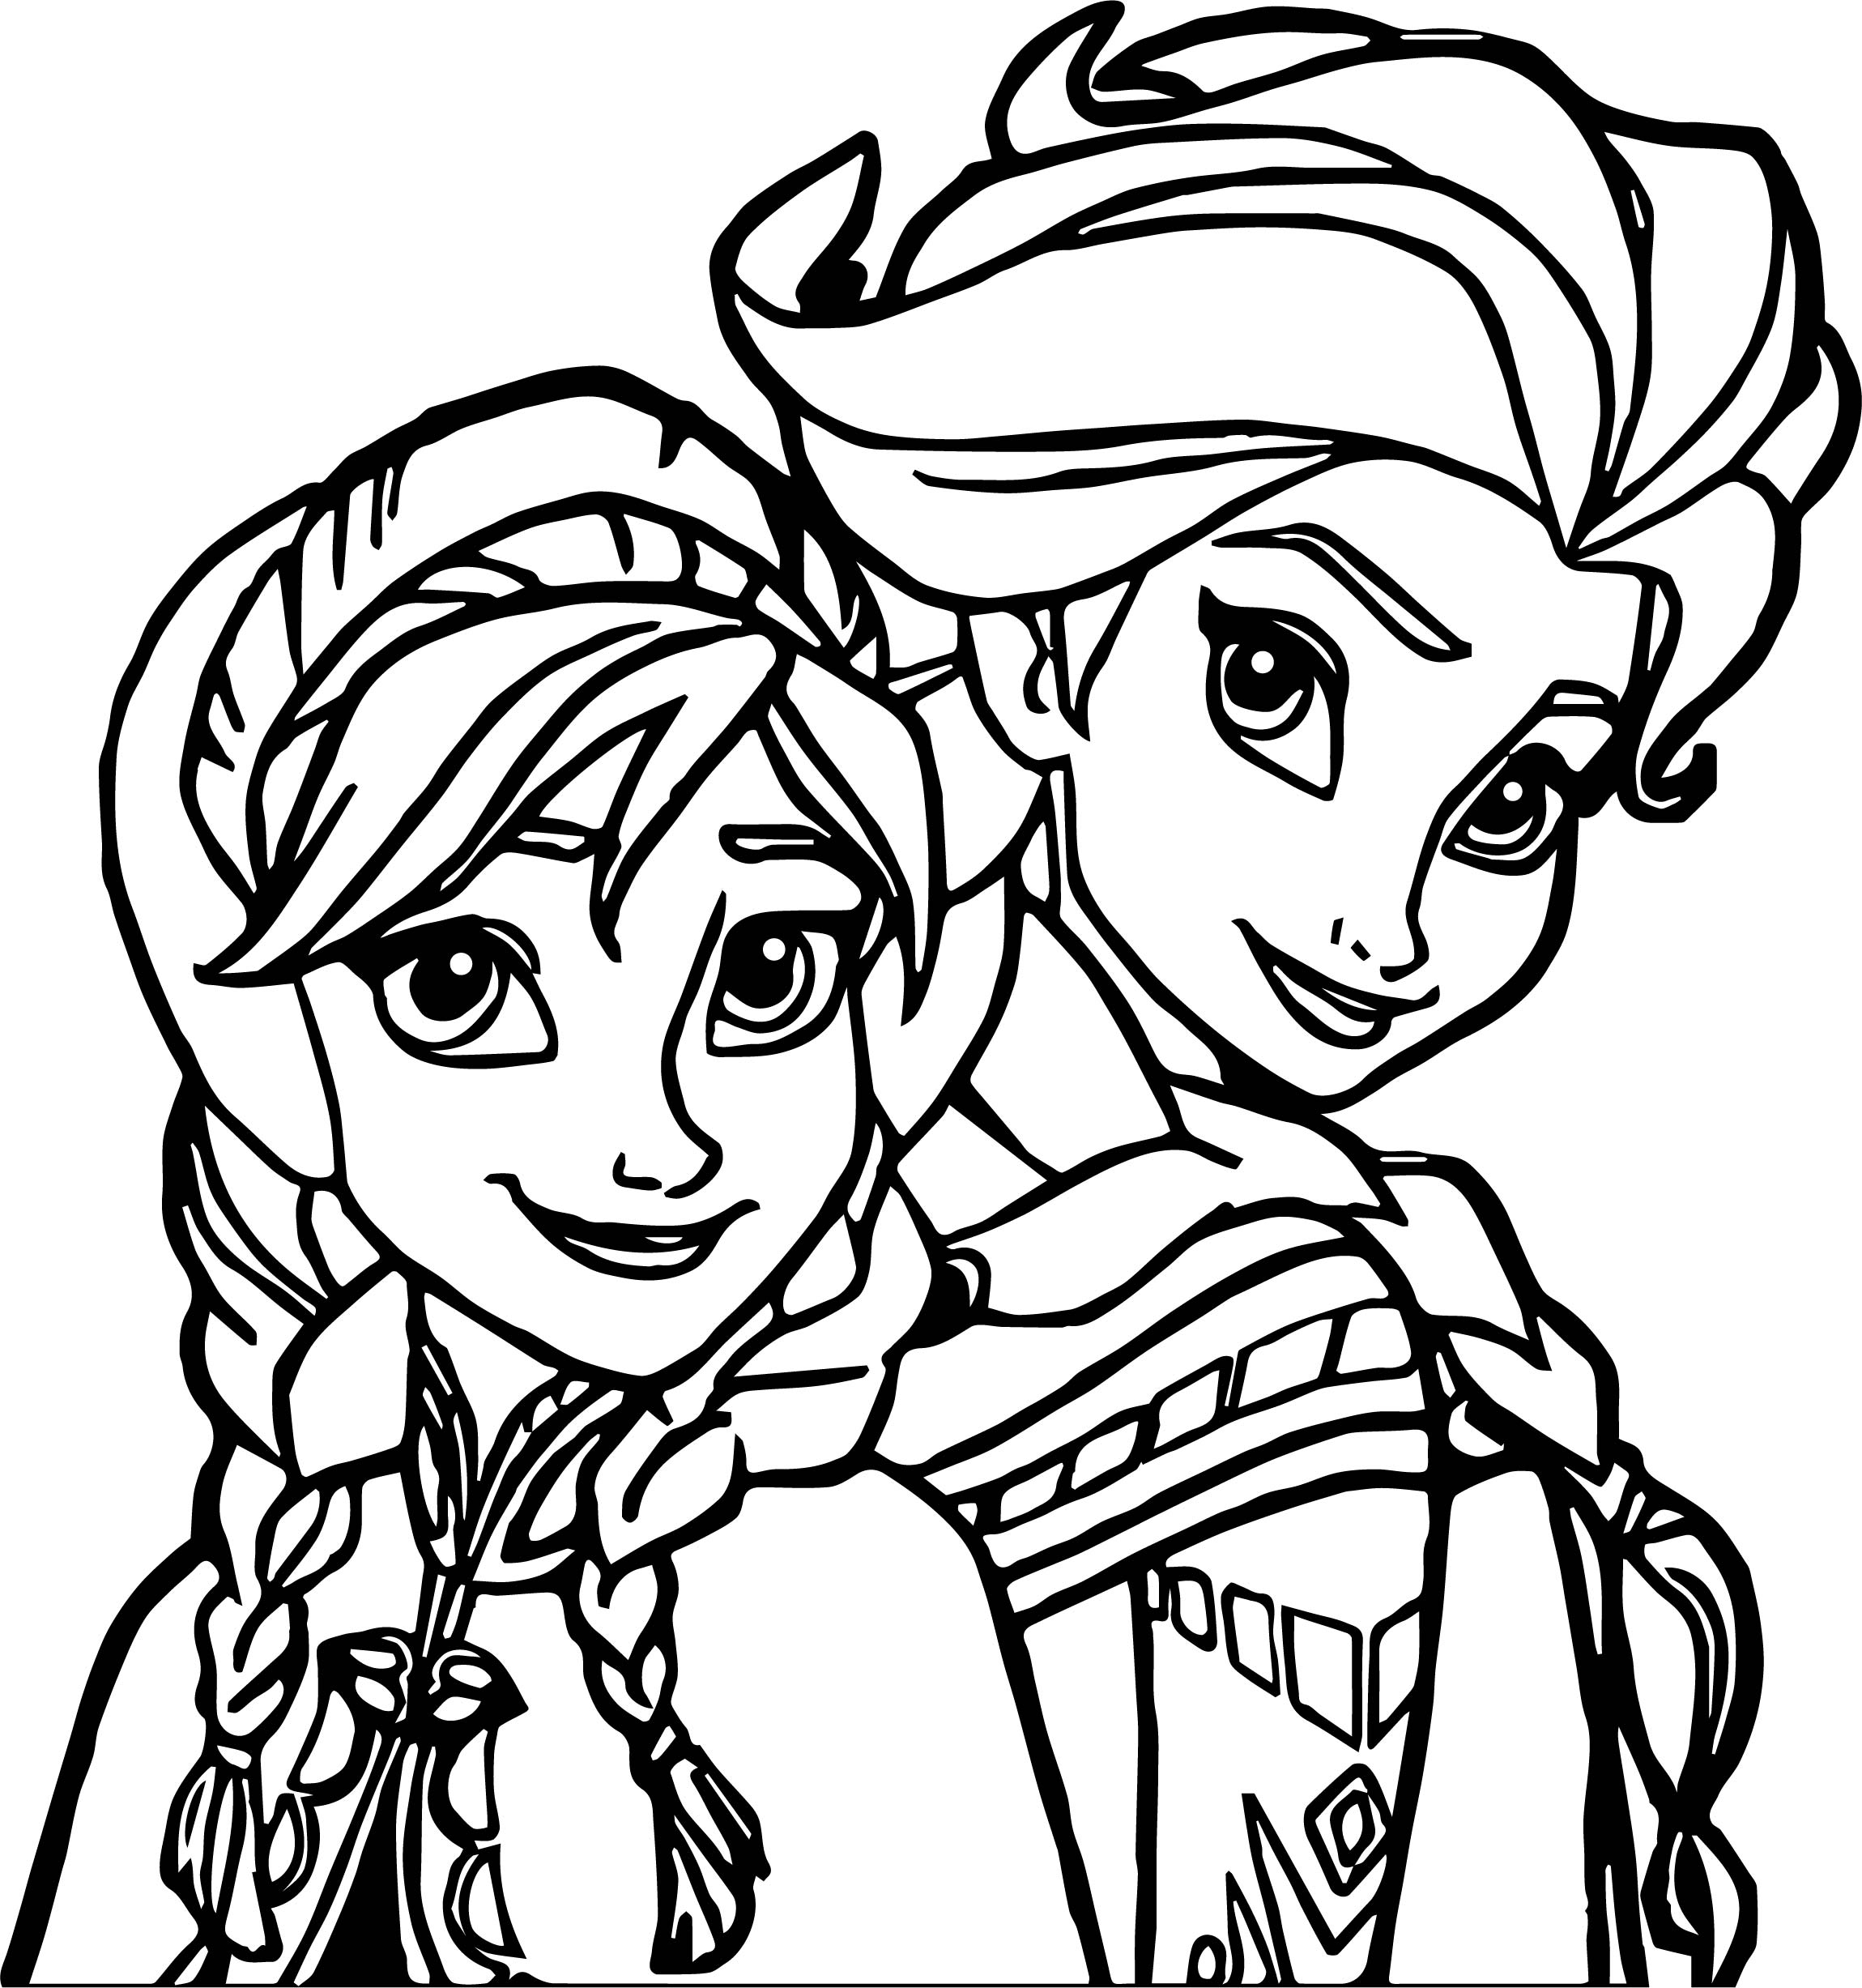 elsa and anna frozen coloring pages elsa coloring pages free download on clipartmag elsa frozen pages coloring anna and